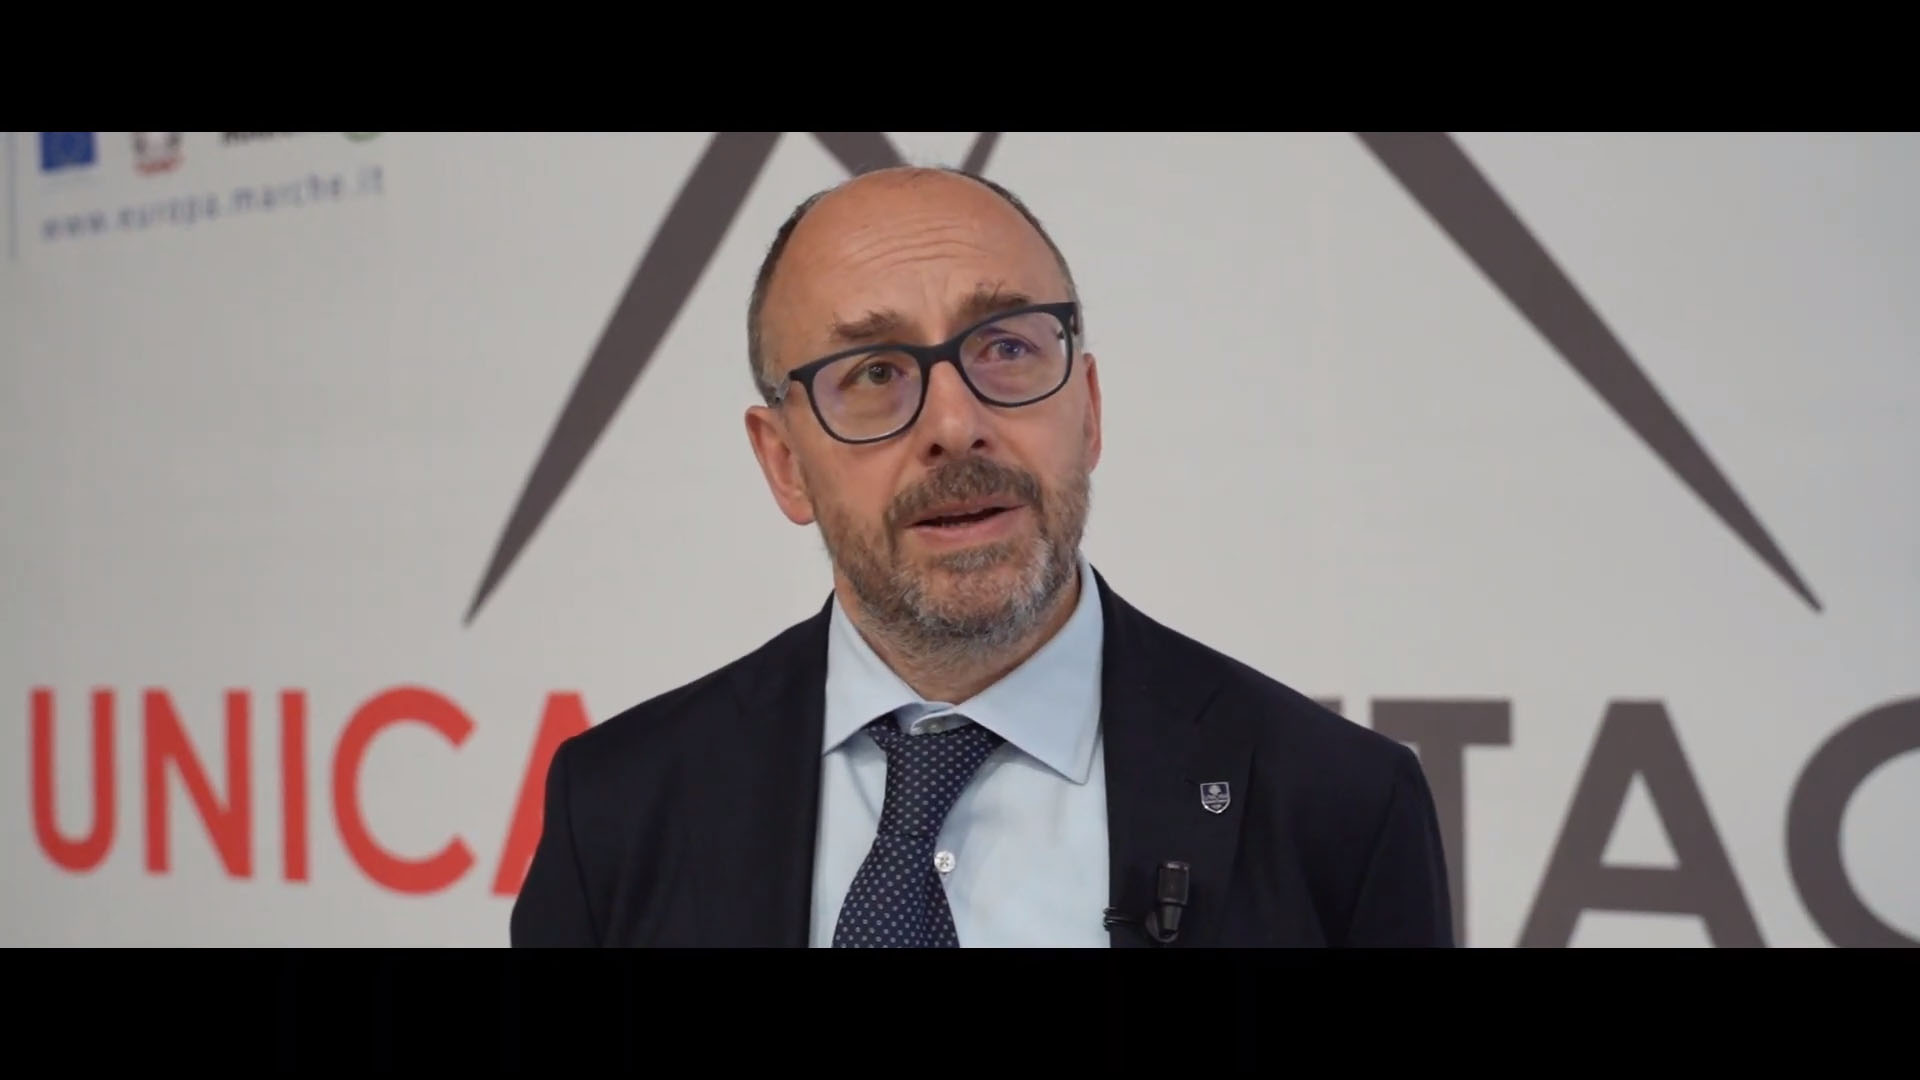 Video: Intervista su UNICAMONTAGNA al Proff. Claudio Pettinari, il rettore di Unicam